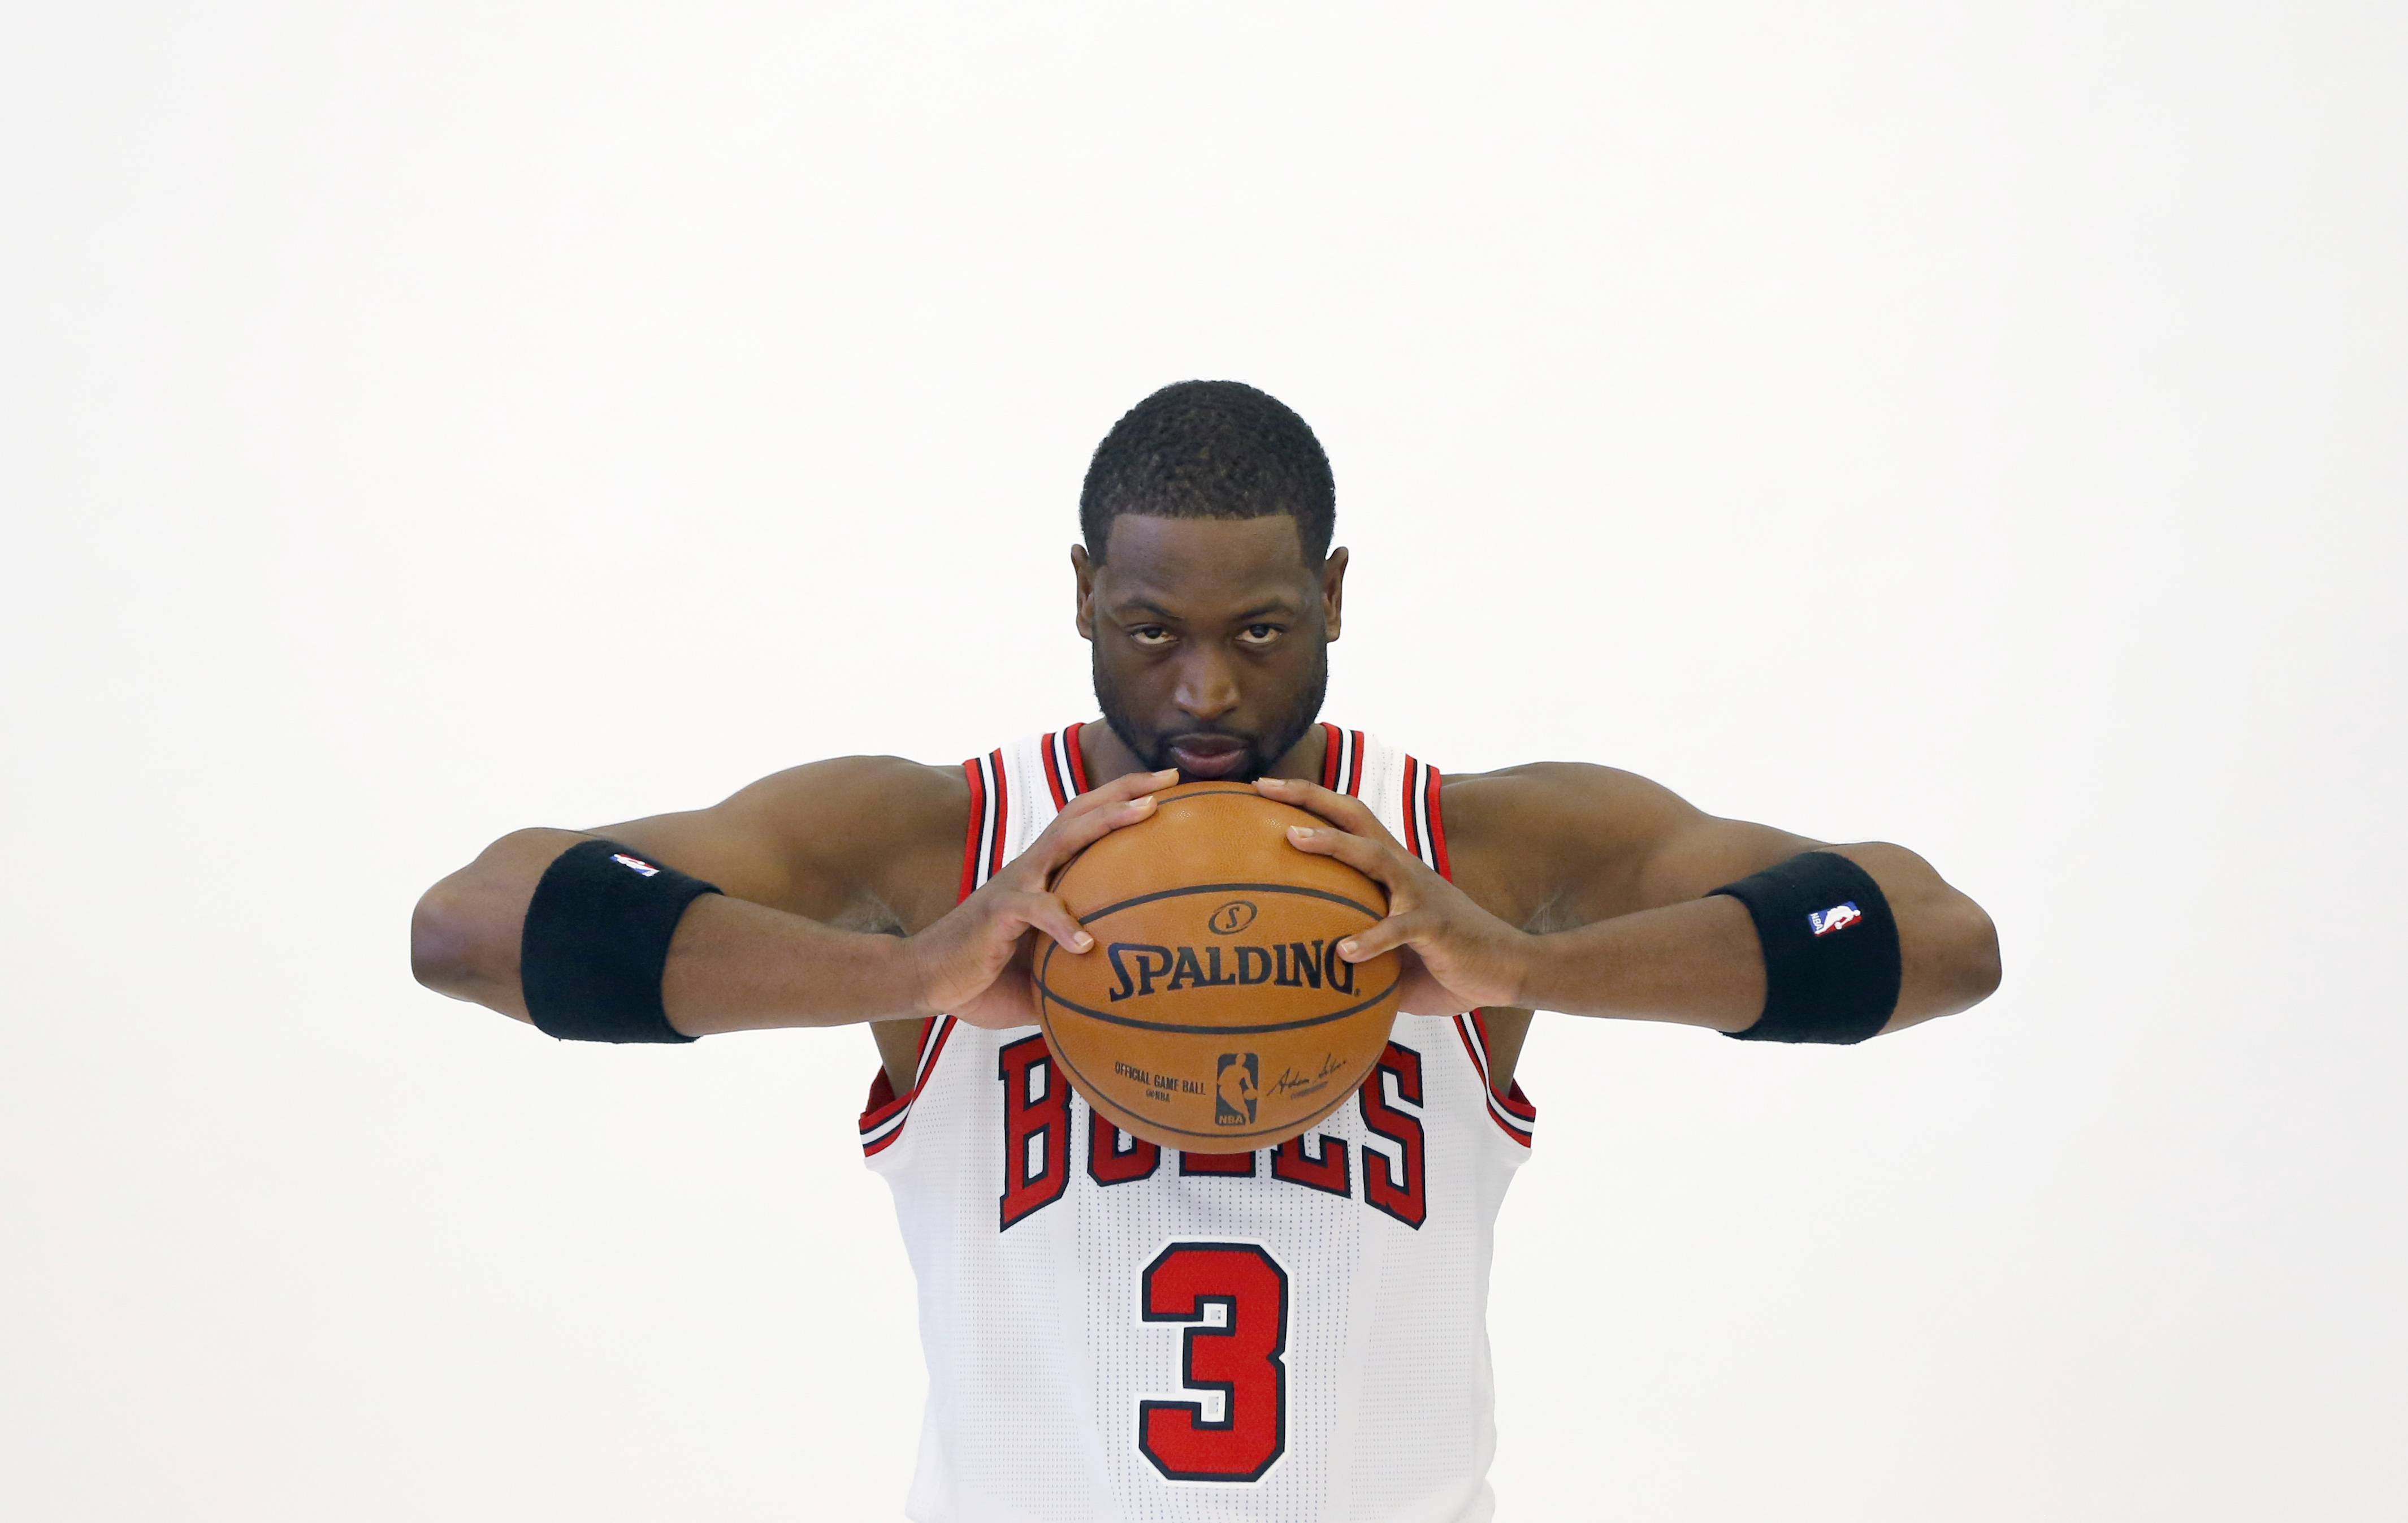 Wade, Rondo taking no-nonsense approach with Bulls